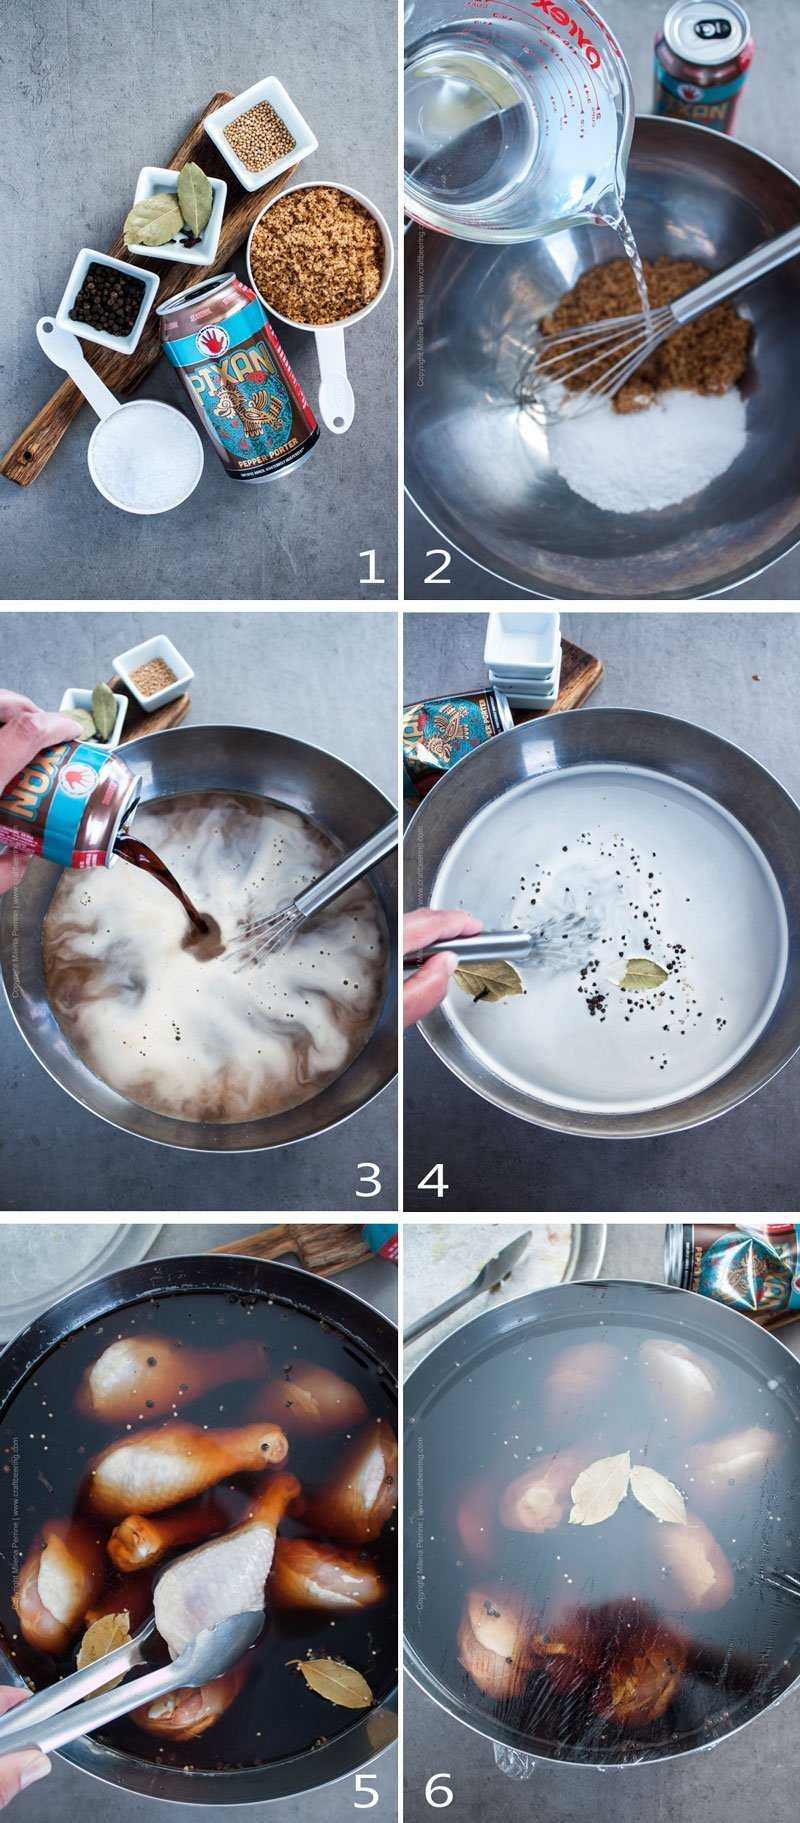 Step by step image grid showing how to make a brine for chicken drumsticks.